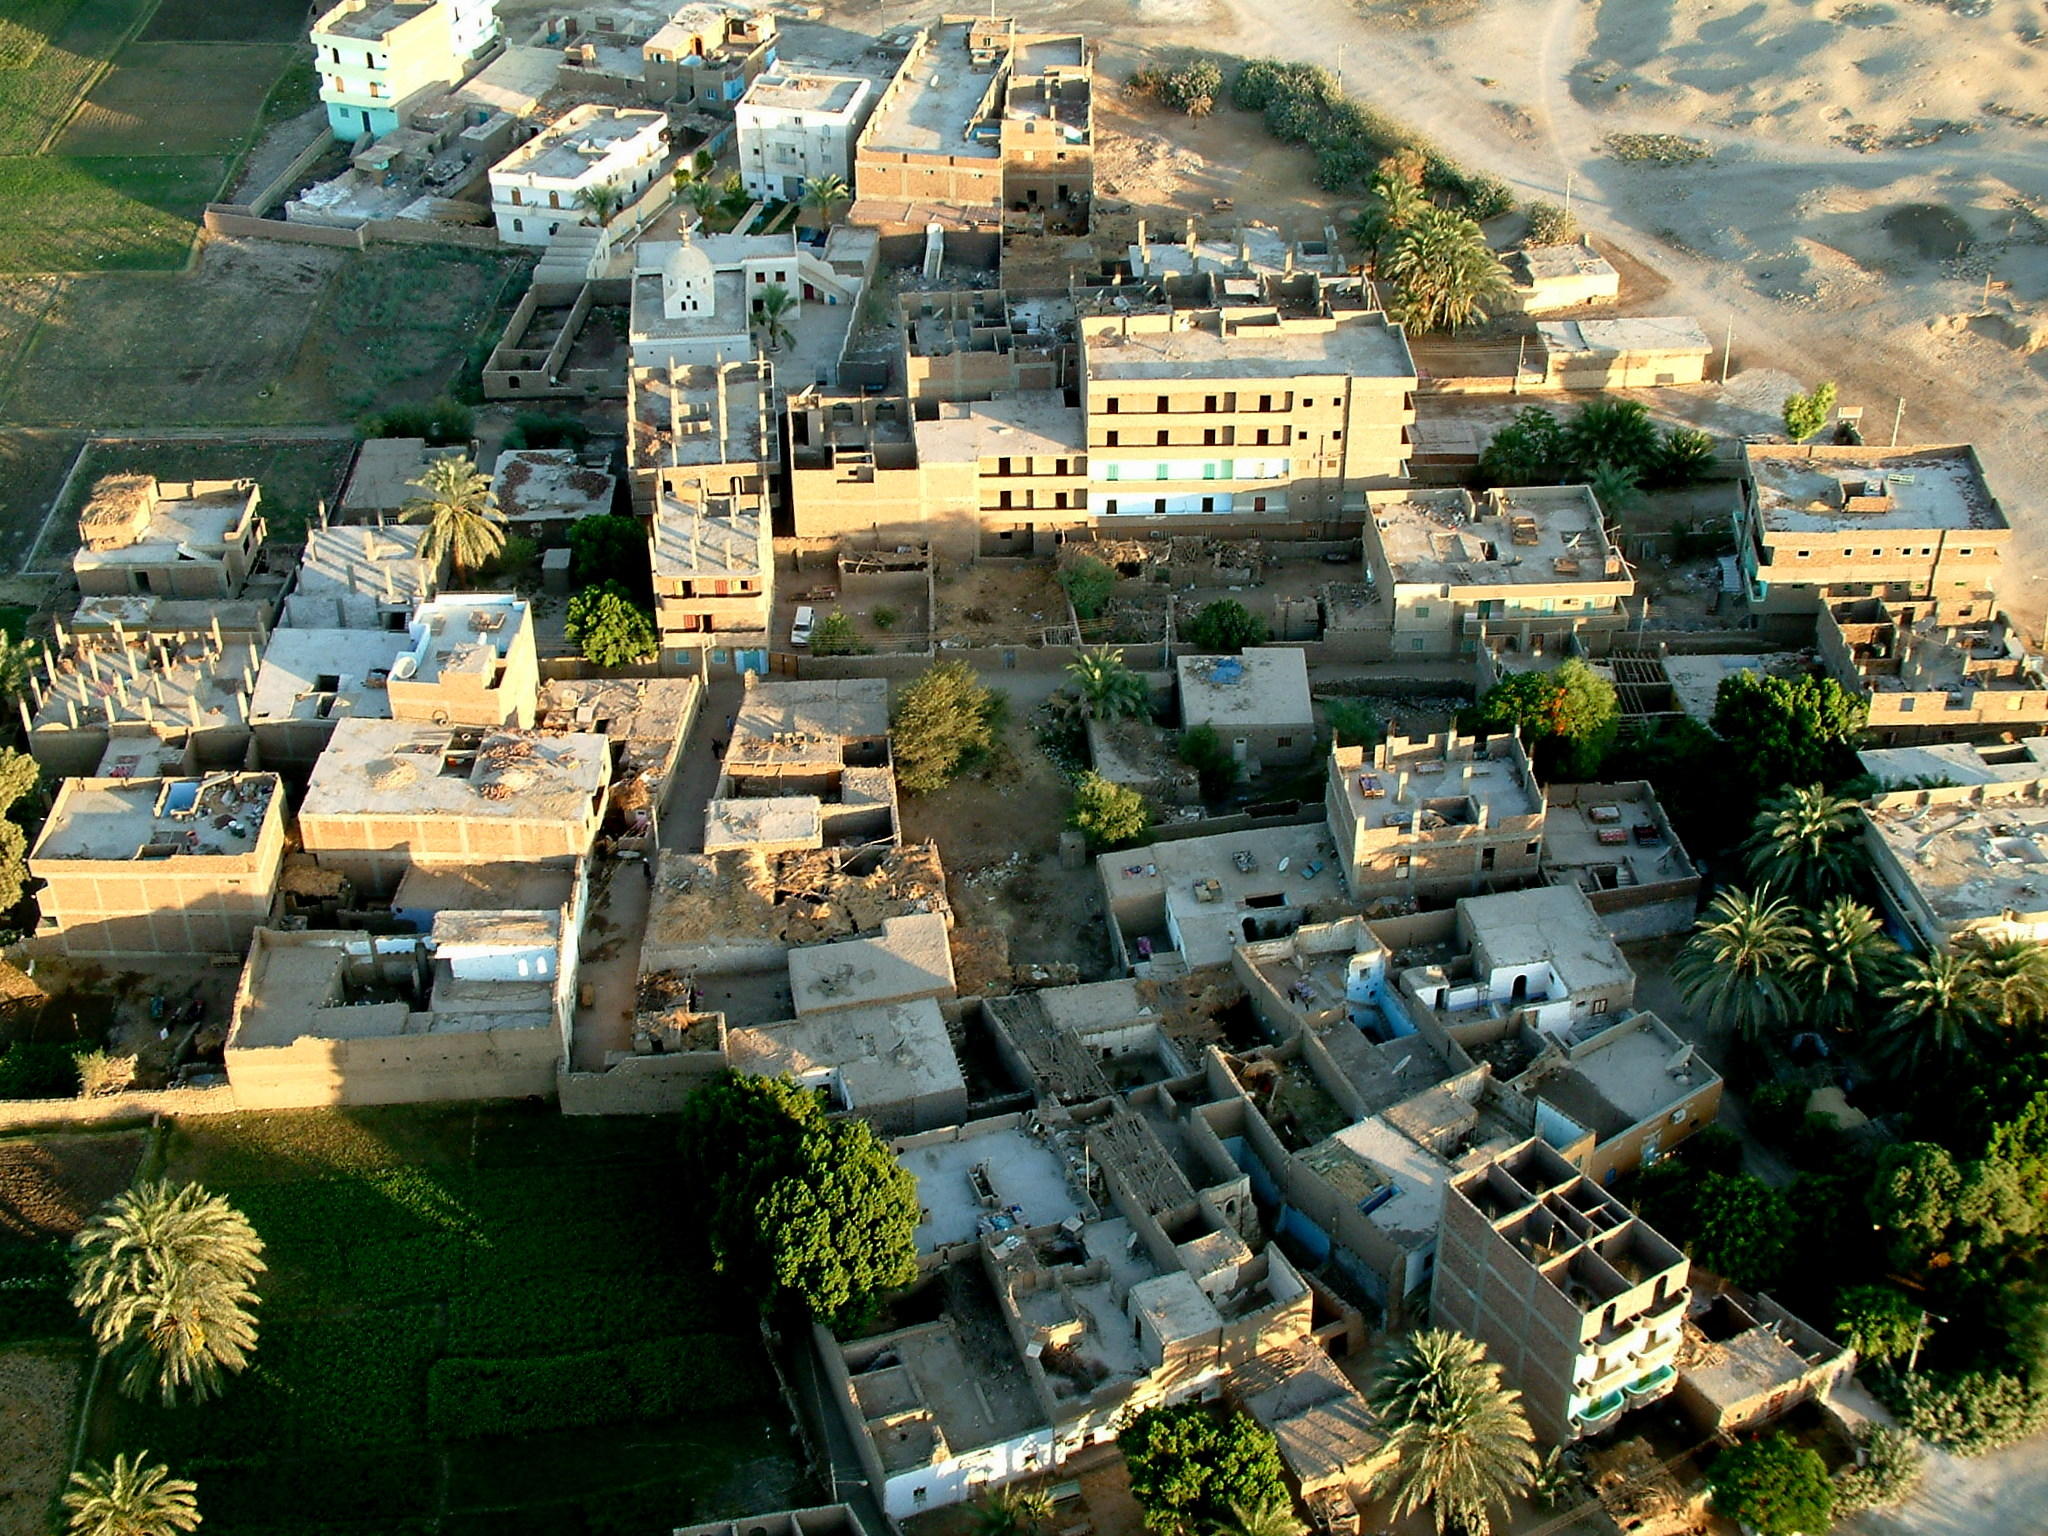 Balloon view of small town in Egypt